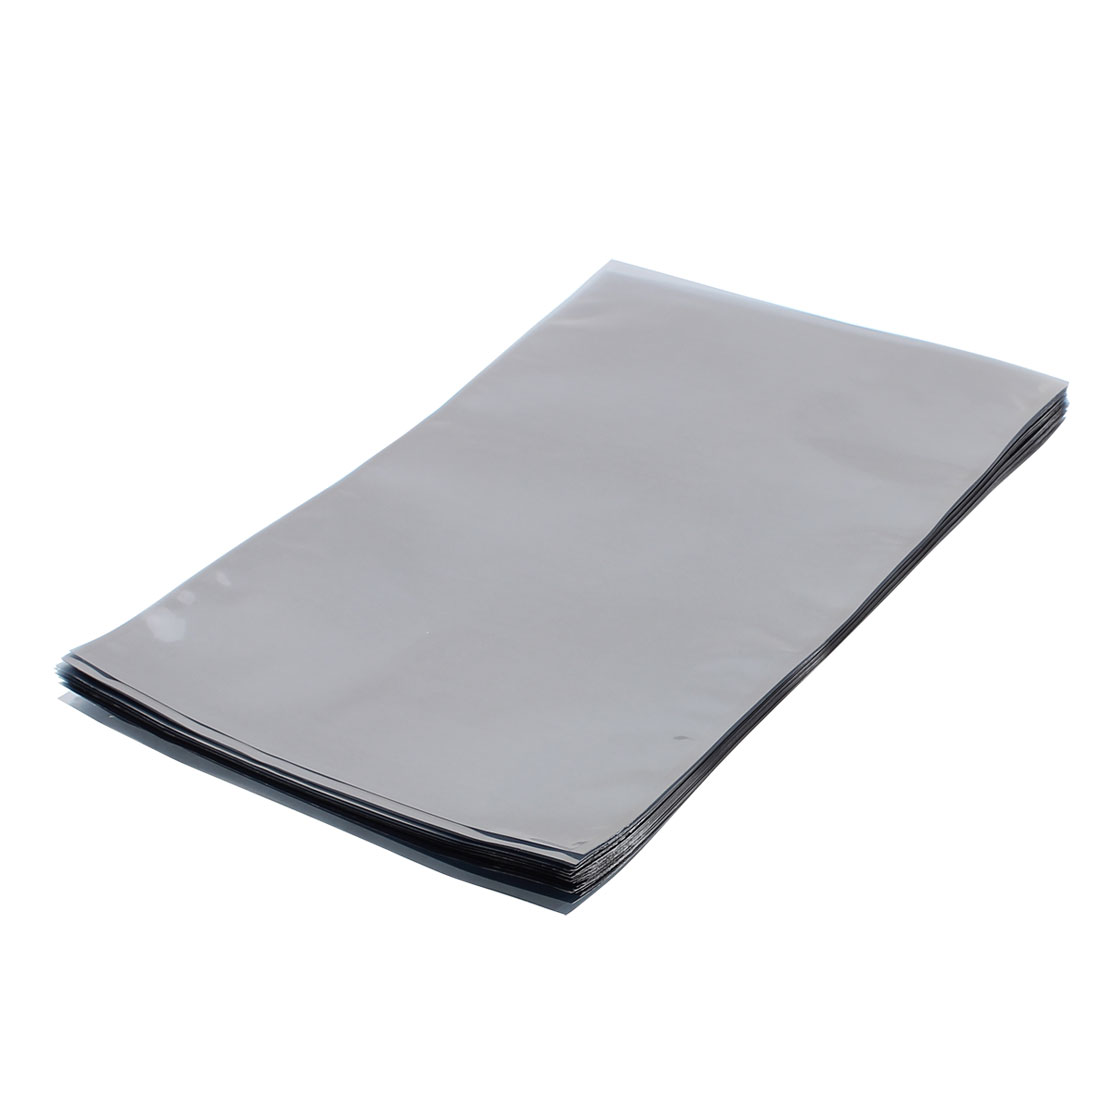 50 Pcs 230mm x 340mm Silver Tone Flat Open Top Anti Static Bag For Electronics